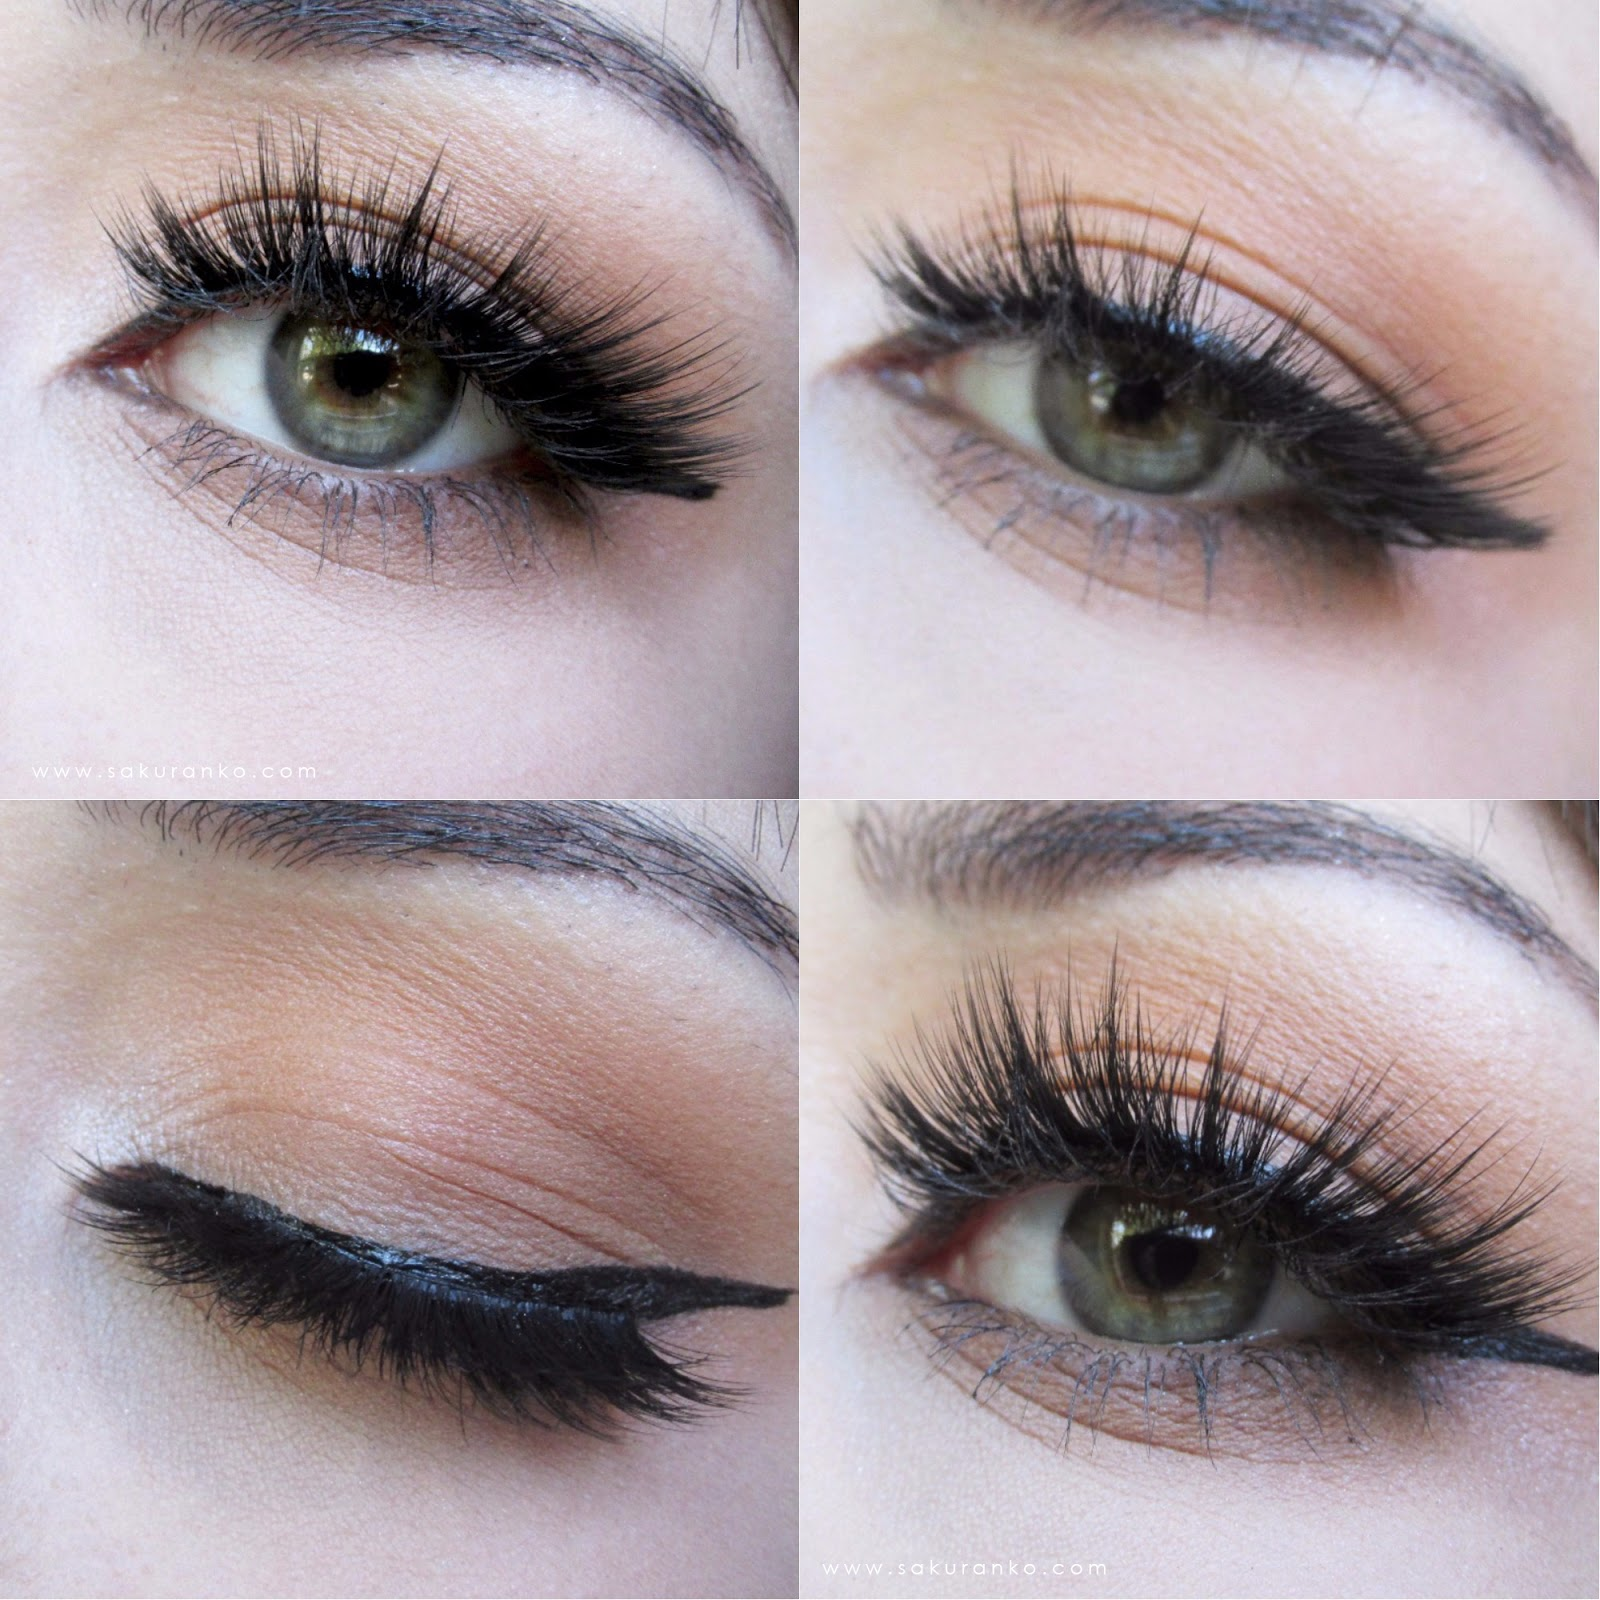 Sakuranko Kiss Lash Couture Faux Mink Collection Gala Eyelashes